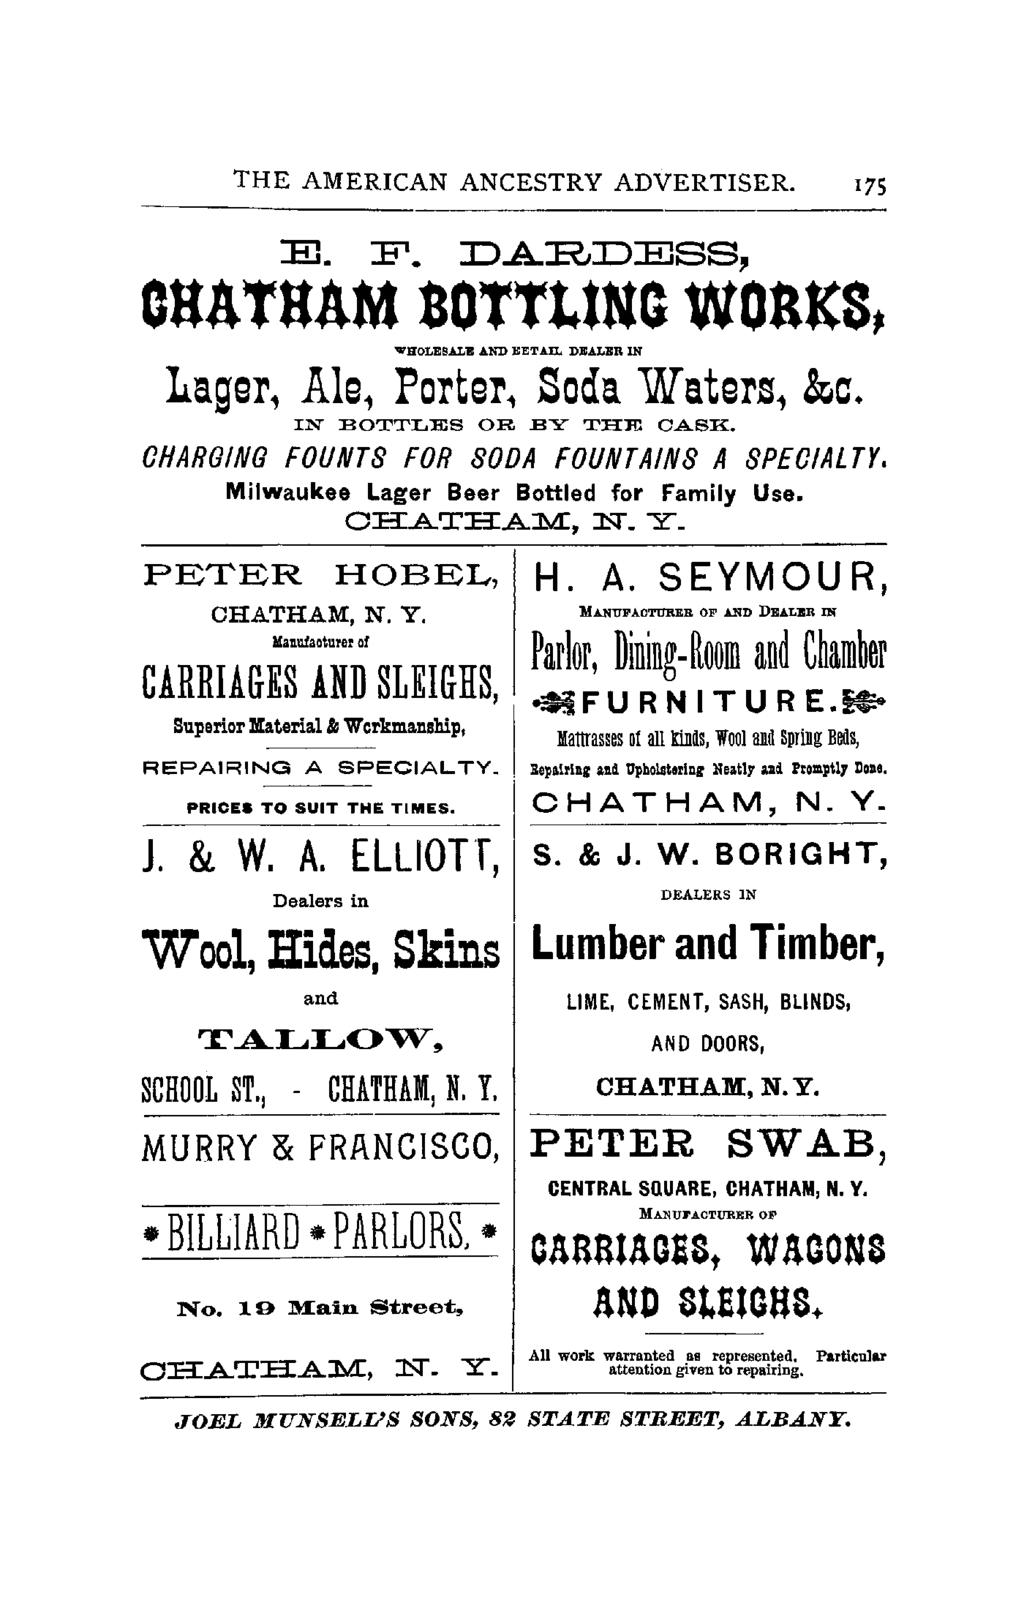 THE AMERICAN ANCESTRY ADVERTISER. 175 E. F. DARDESS,. OaATaAM nottttng WOaKS~ WHOLESALE AND JIlETAIL DEALER IN Lager, Ale, Forter, Soda Water.s, &c. IN BOTTLES OR BY THE CASK.